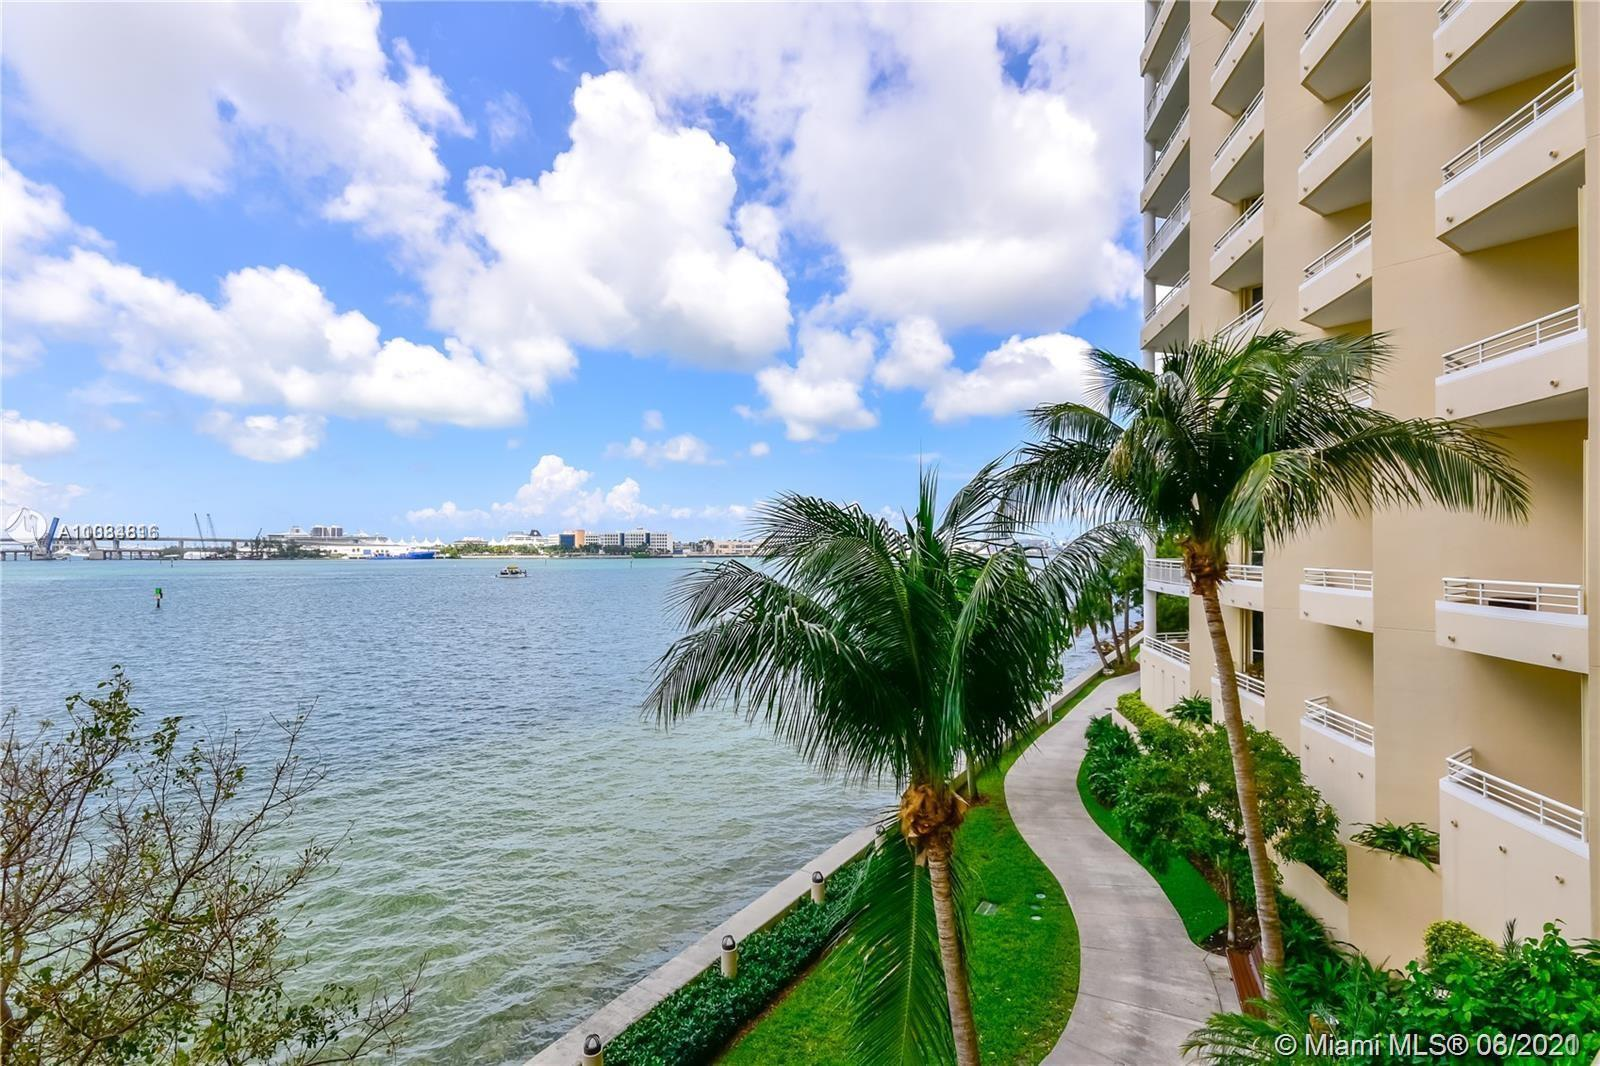 BEAUTIFUL 2BD/2.5B COMPLETELY REMODELED, MARBLE FLOORS THROUGHOUT, CITY AND WATER VIEW.IN AMAZING BR